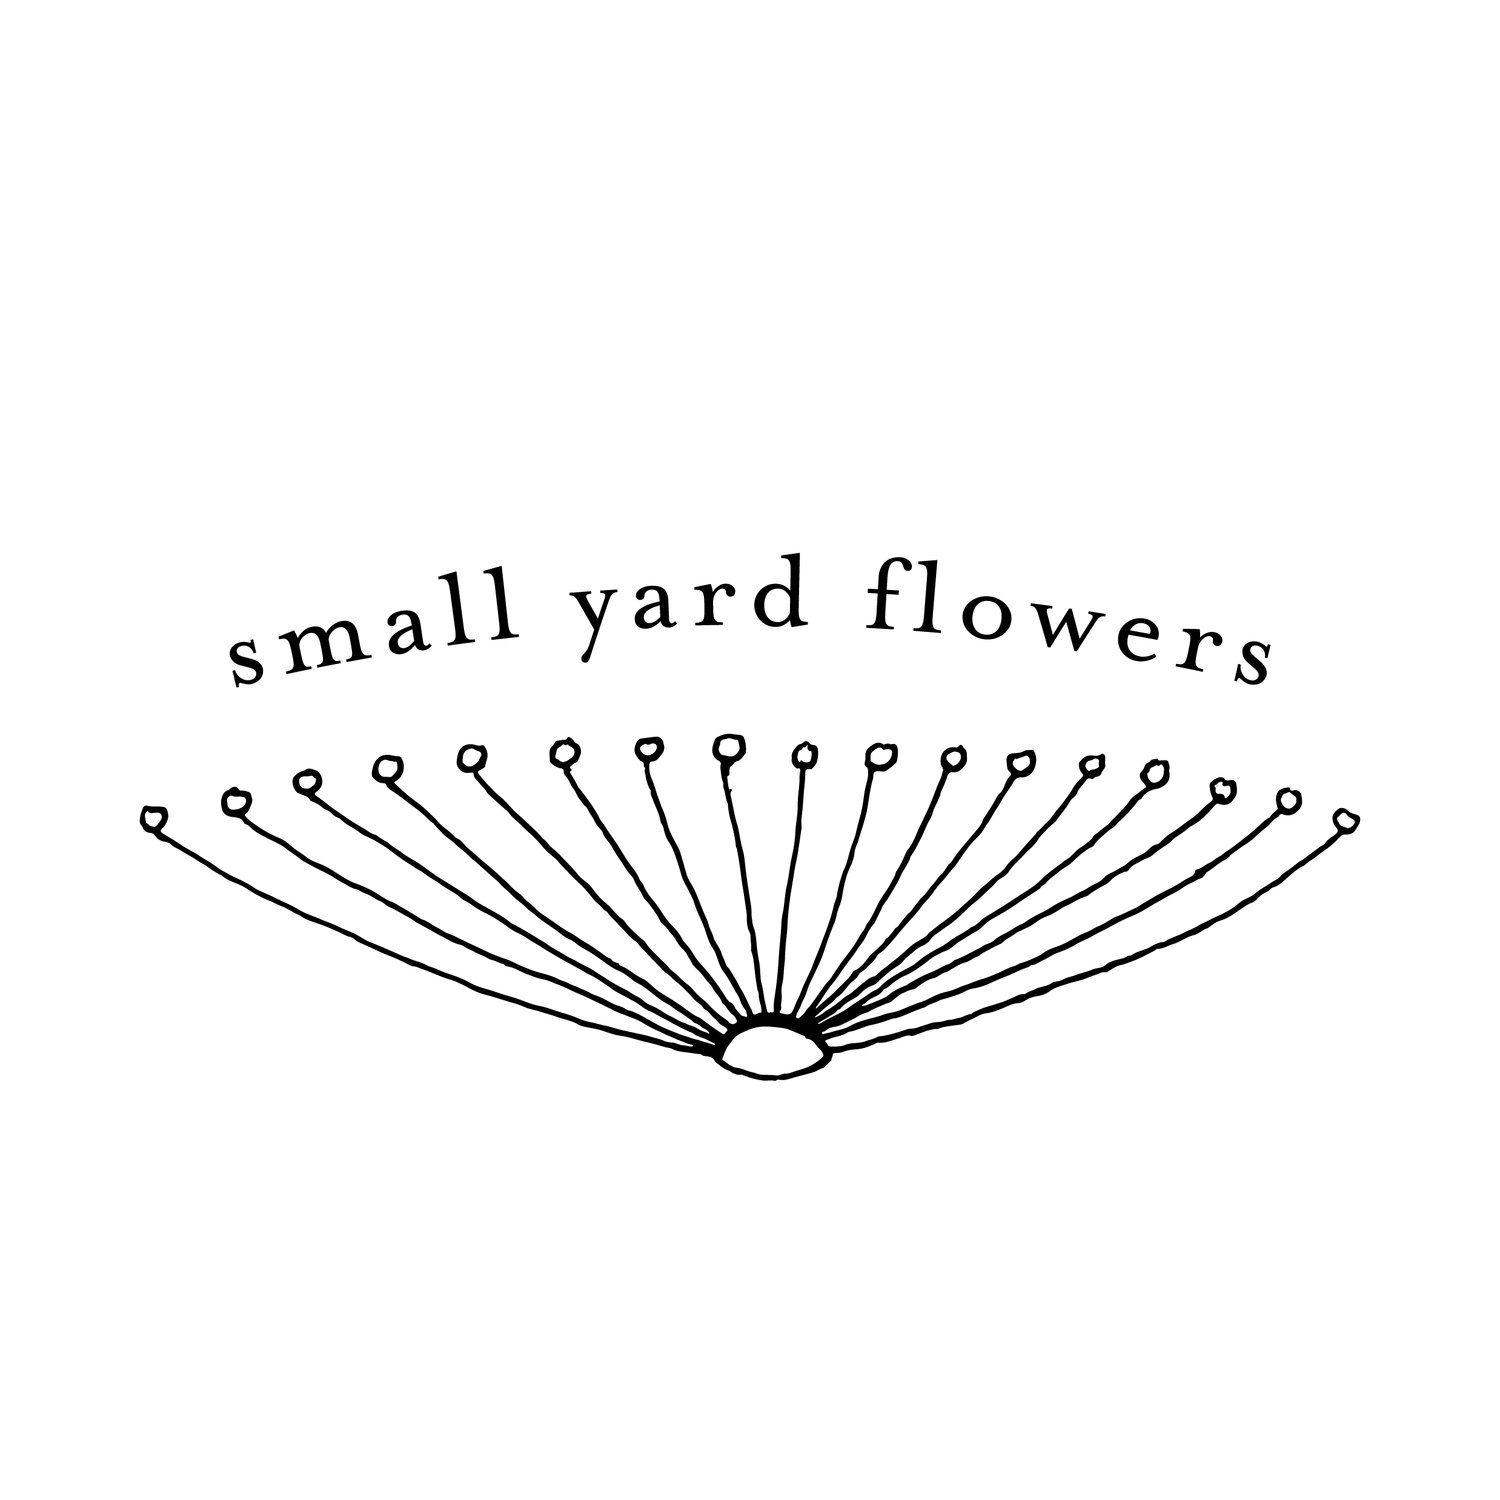 Small Yard Flowers